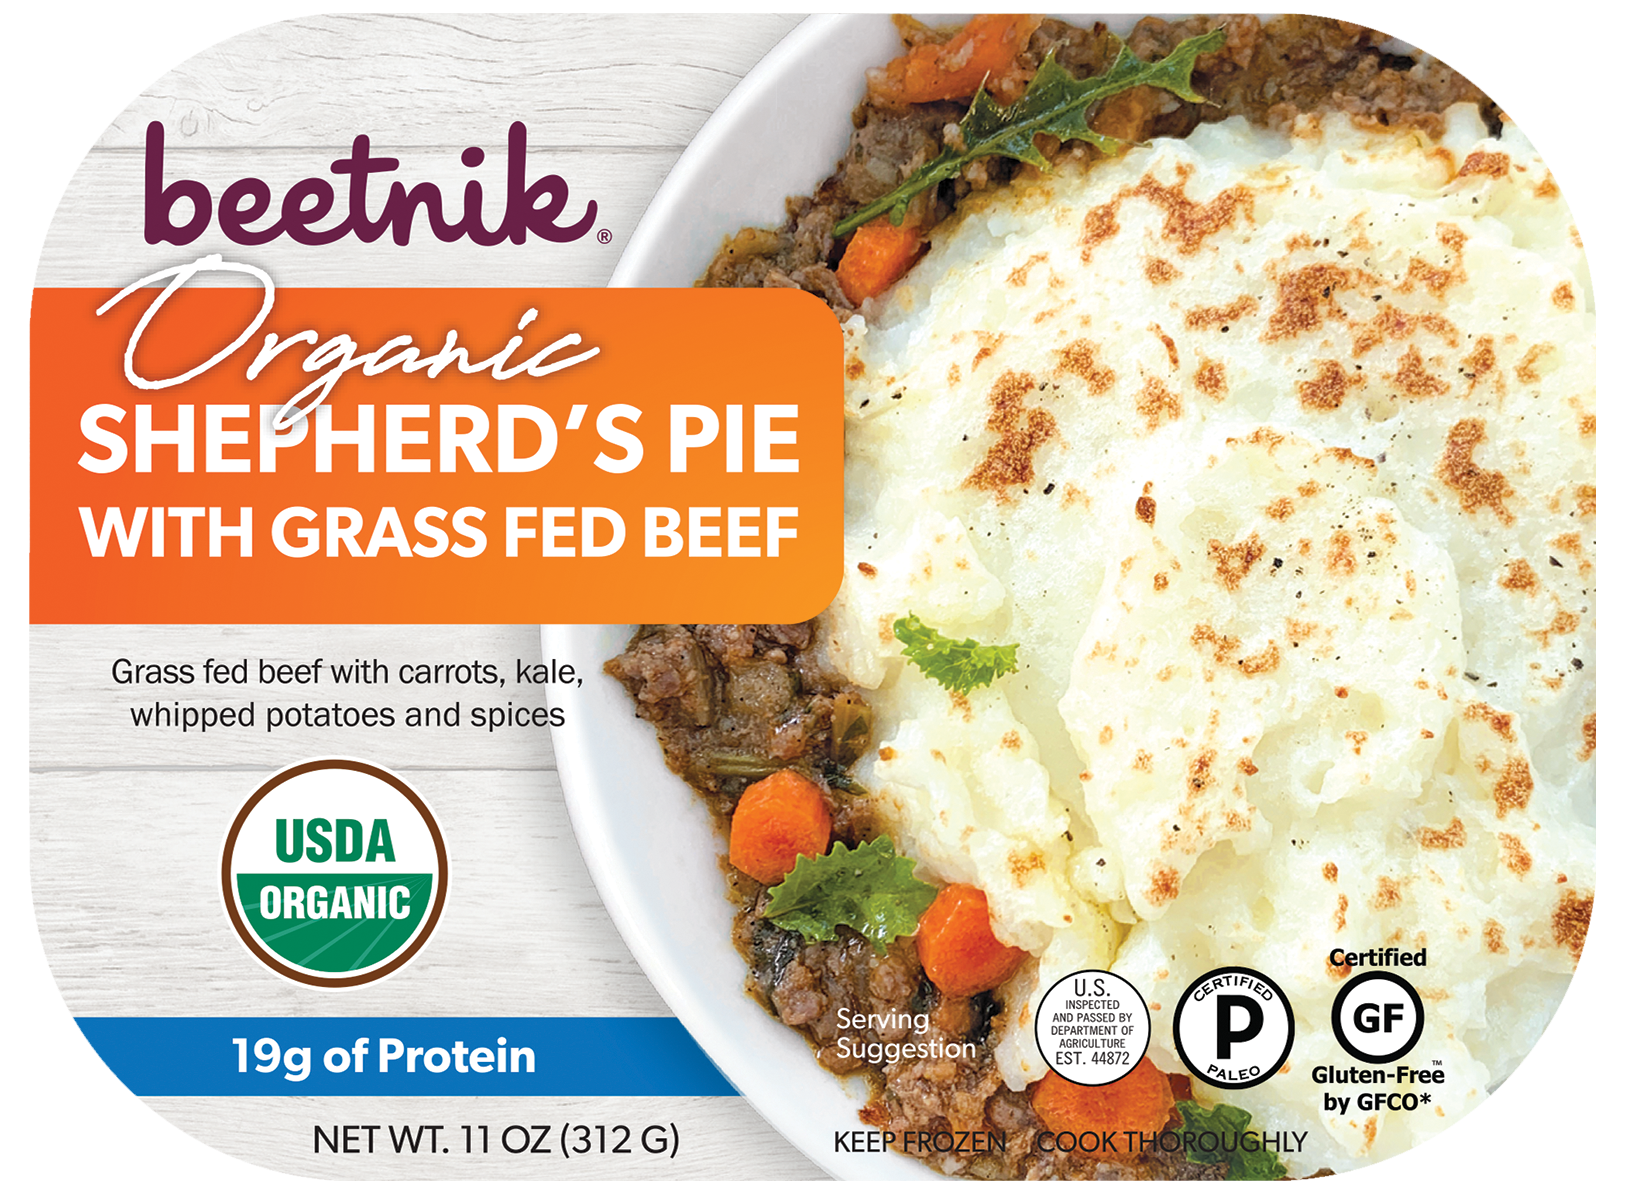 Beetnik Foods Launches New Packaging